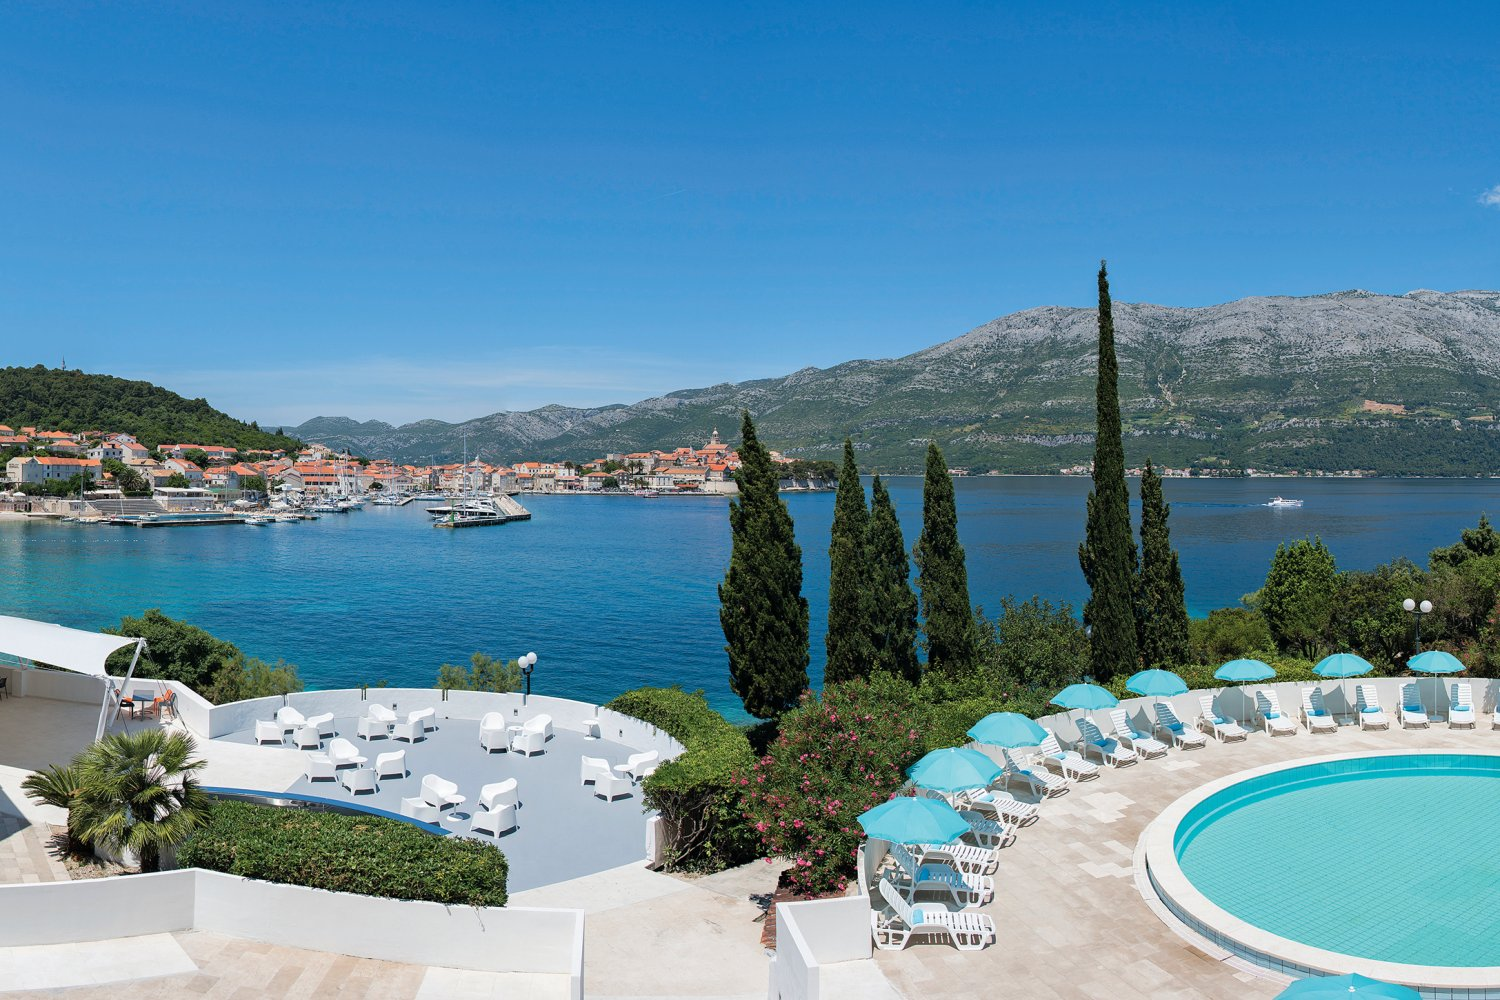 Where to stay in Korcula, Hotel Liburna